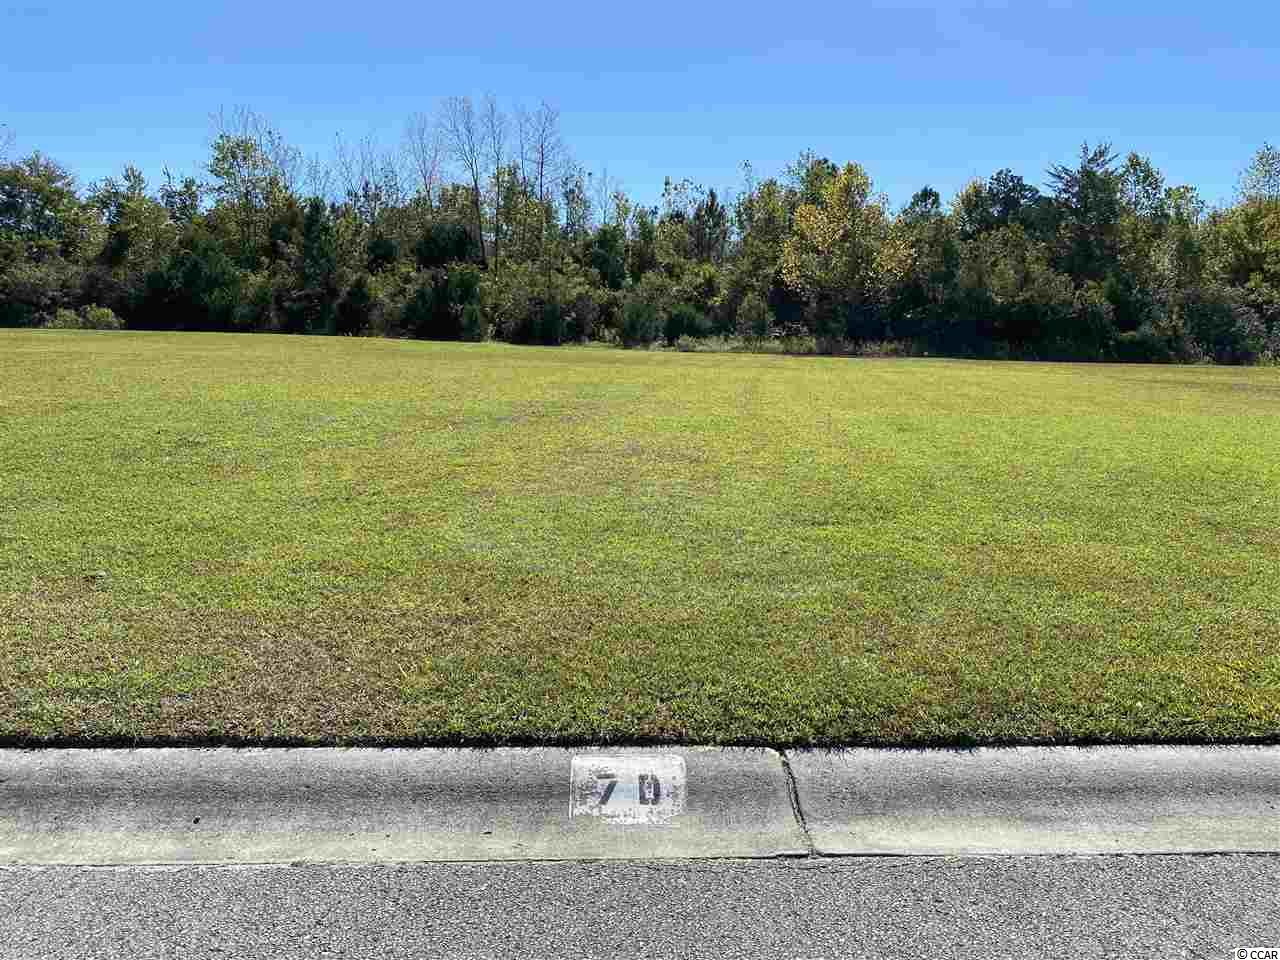 If you have been dreaming of building a home in an Intracoastal Waterway community, dream no more.  Palmetto Harbor is situated in the heart of North Myrtle Beach along the ICW and is a small development with only 74 possible homes.  This is one of only 2 lots currently available with this one being larger and lower priced with an ICW view and backs up to the end of large pond with a fountain.  Lot is irregular in shape with dimensions of 60x170x34x56x15x123.  Bring your builder and design that perfect home suited to your tastes.  The development is located close to everything such as shopping, dining, fishing, boating and the beach is less than 2 miles away (and you can golf cart there if you would like).  Lot is already cleared.  Take a ride by today and give me a call and let's get it under contract before someone else steals this lot!